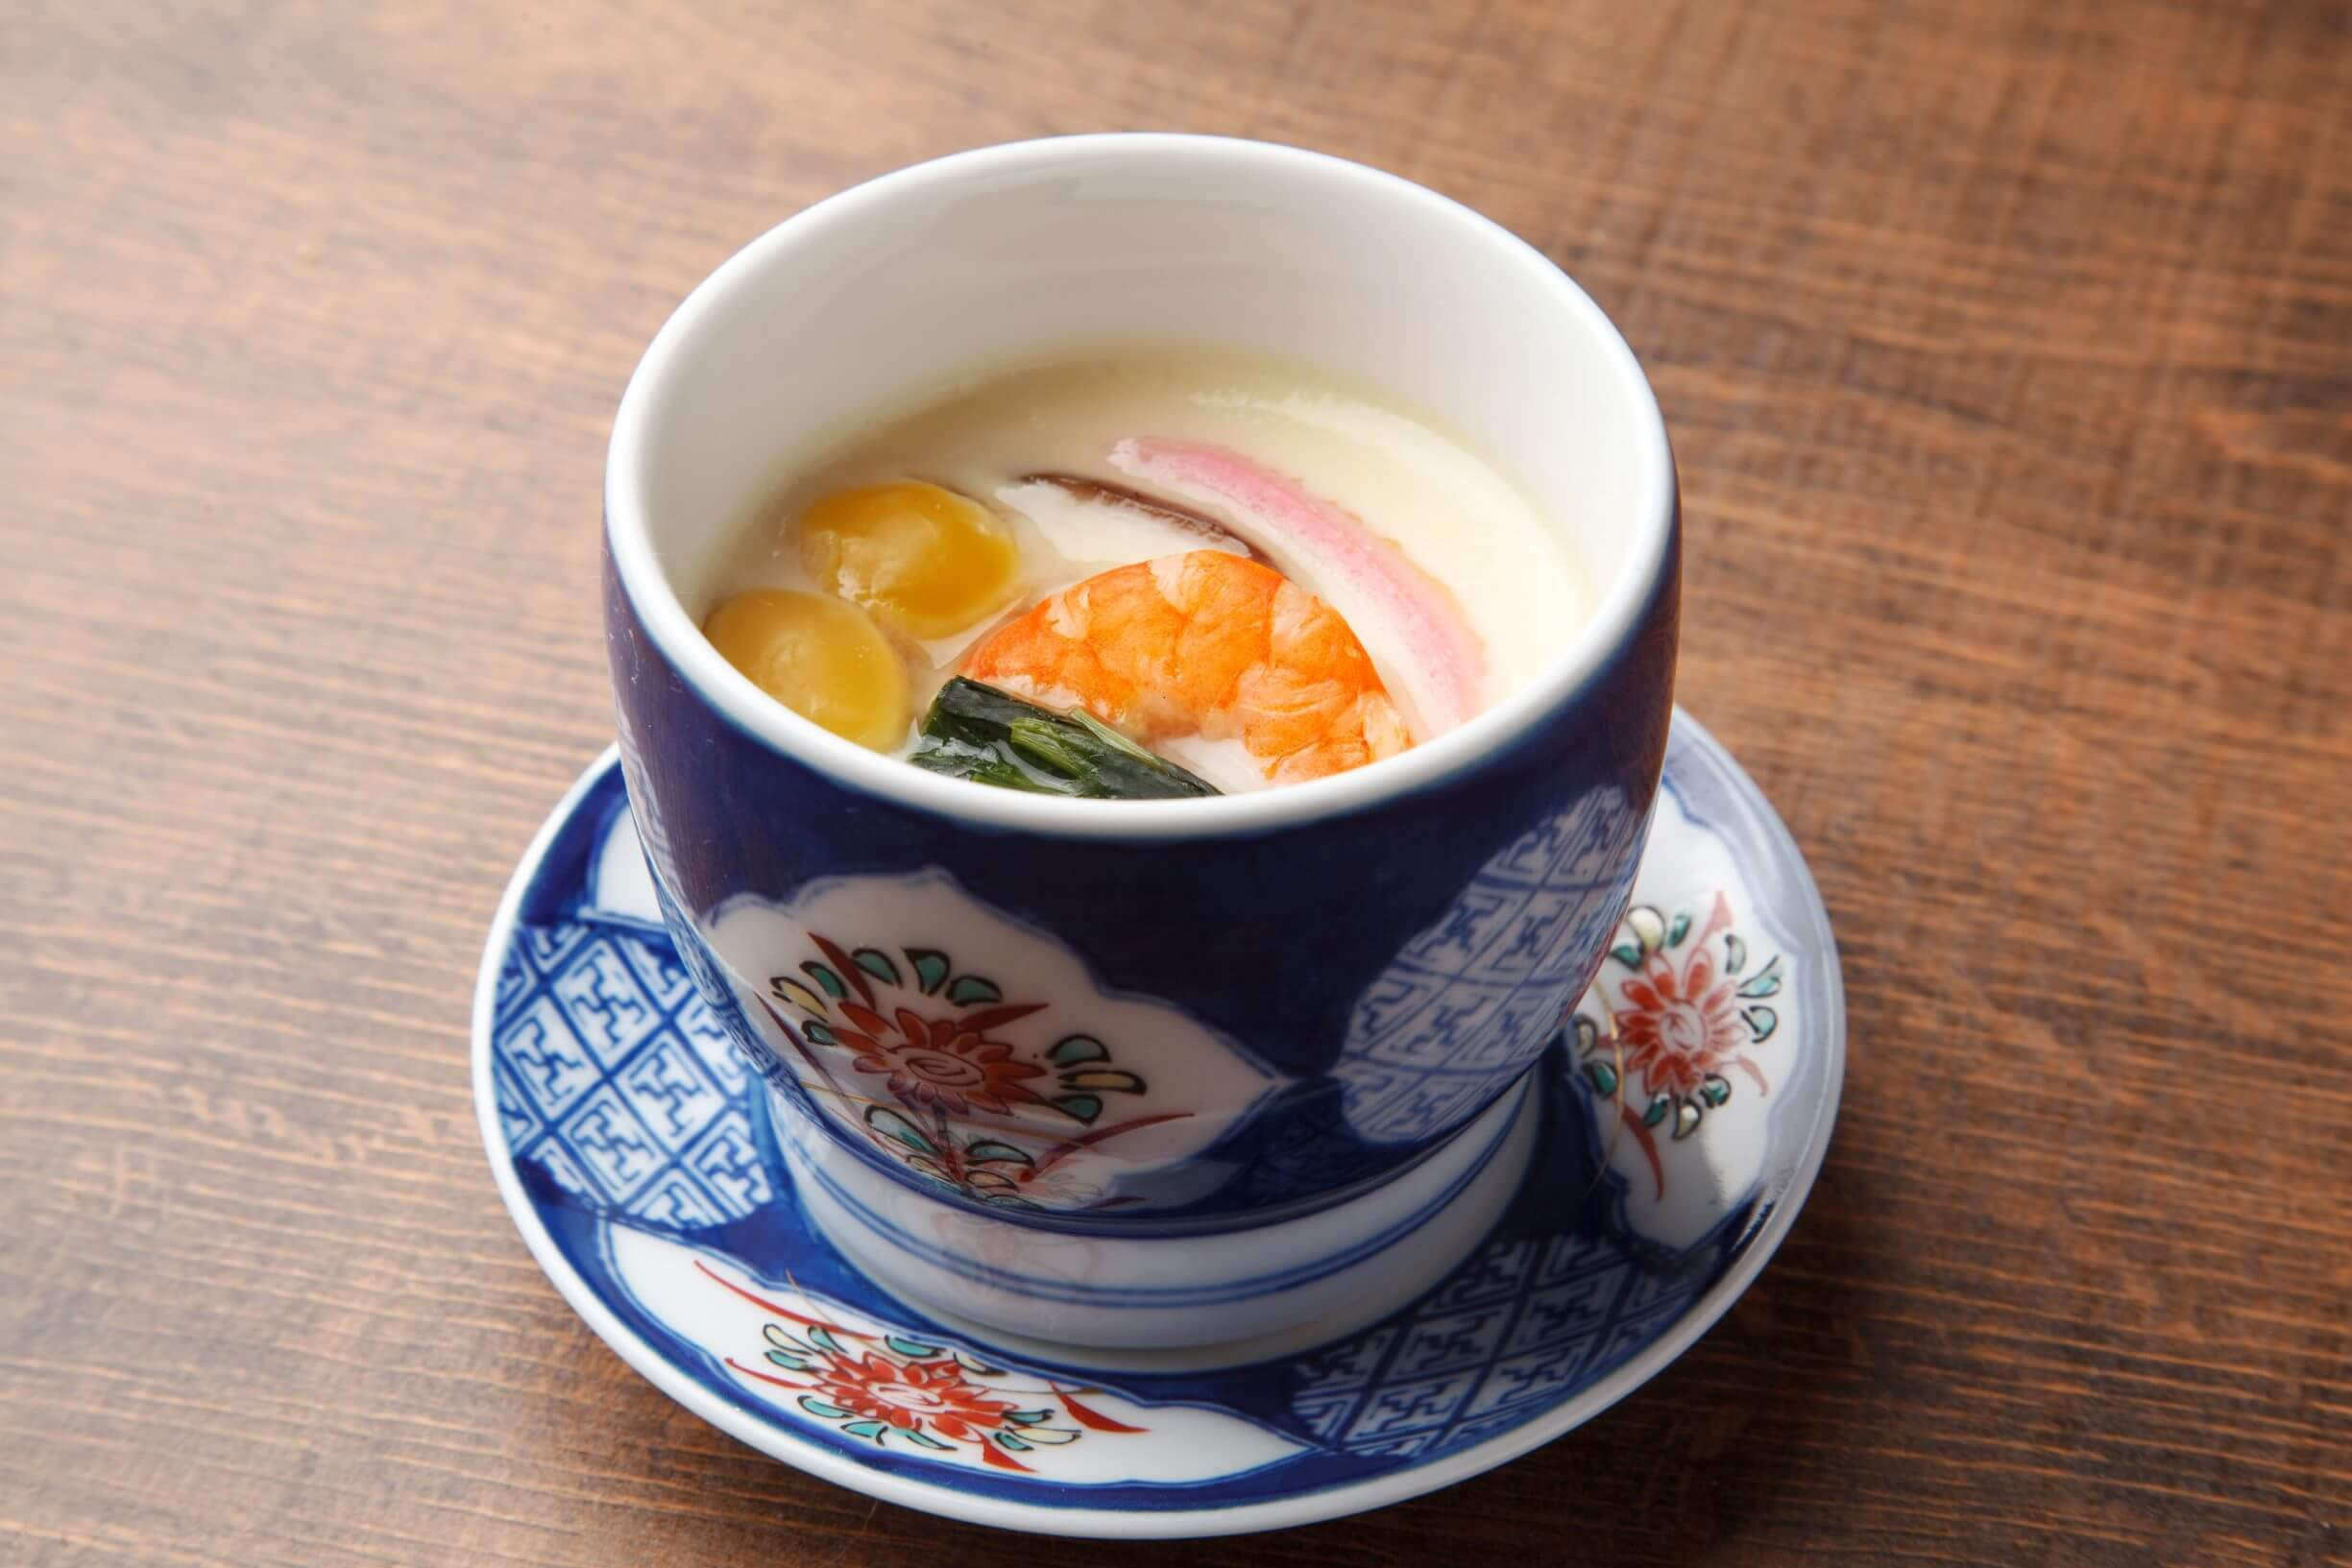 A tea cup filled with steamed egg